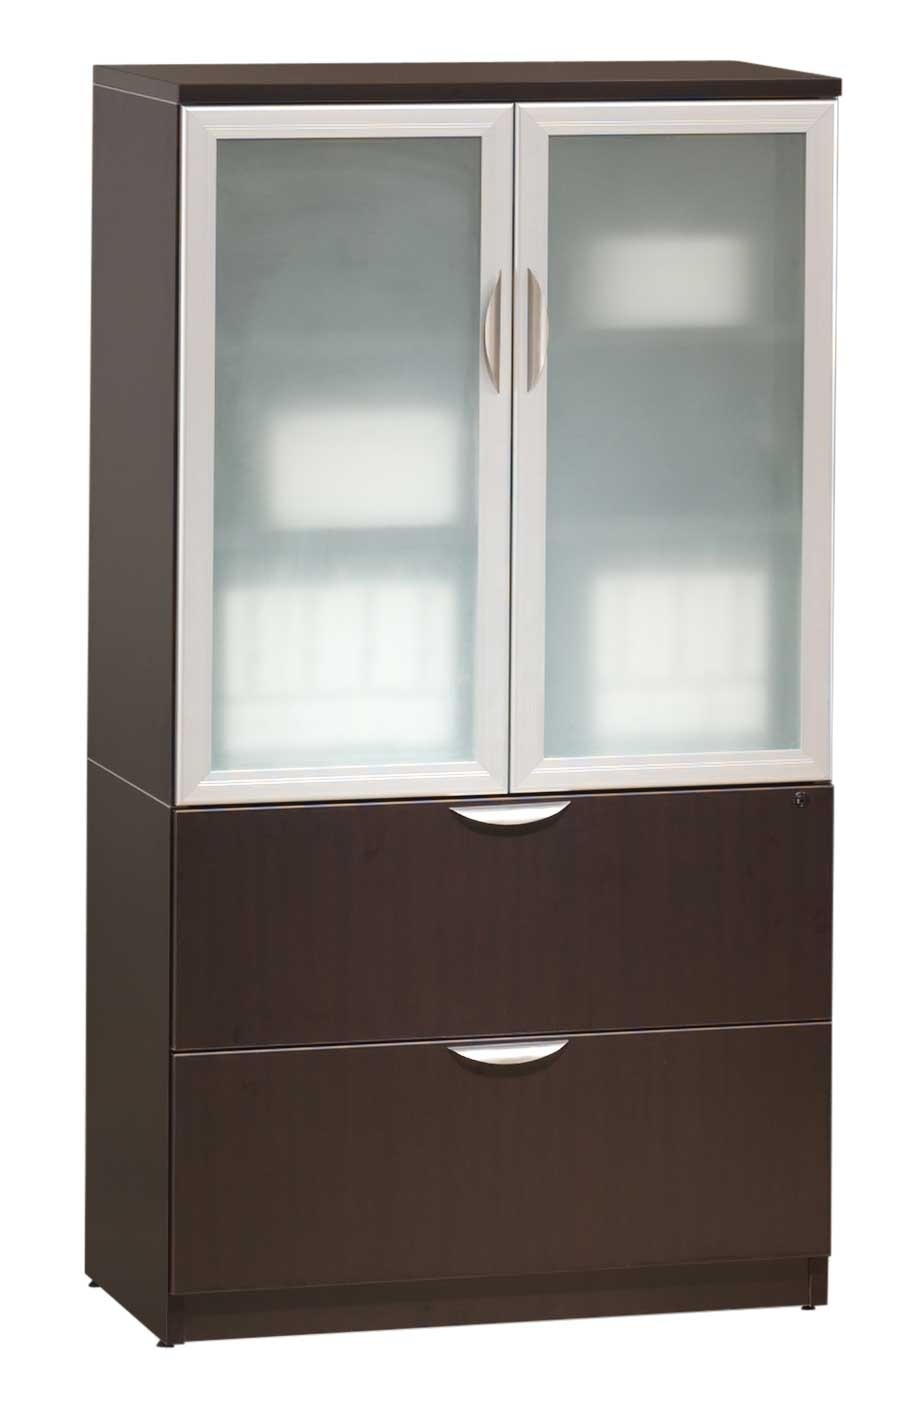 Permalink to Wood Storage Cabinet With Glass Doors